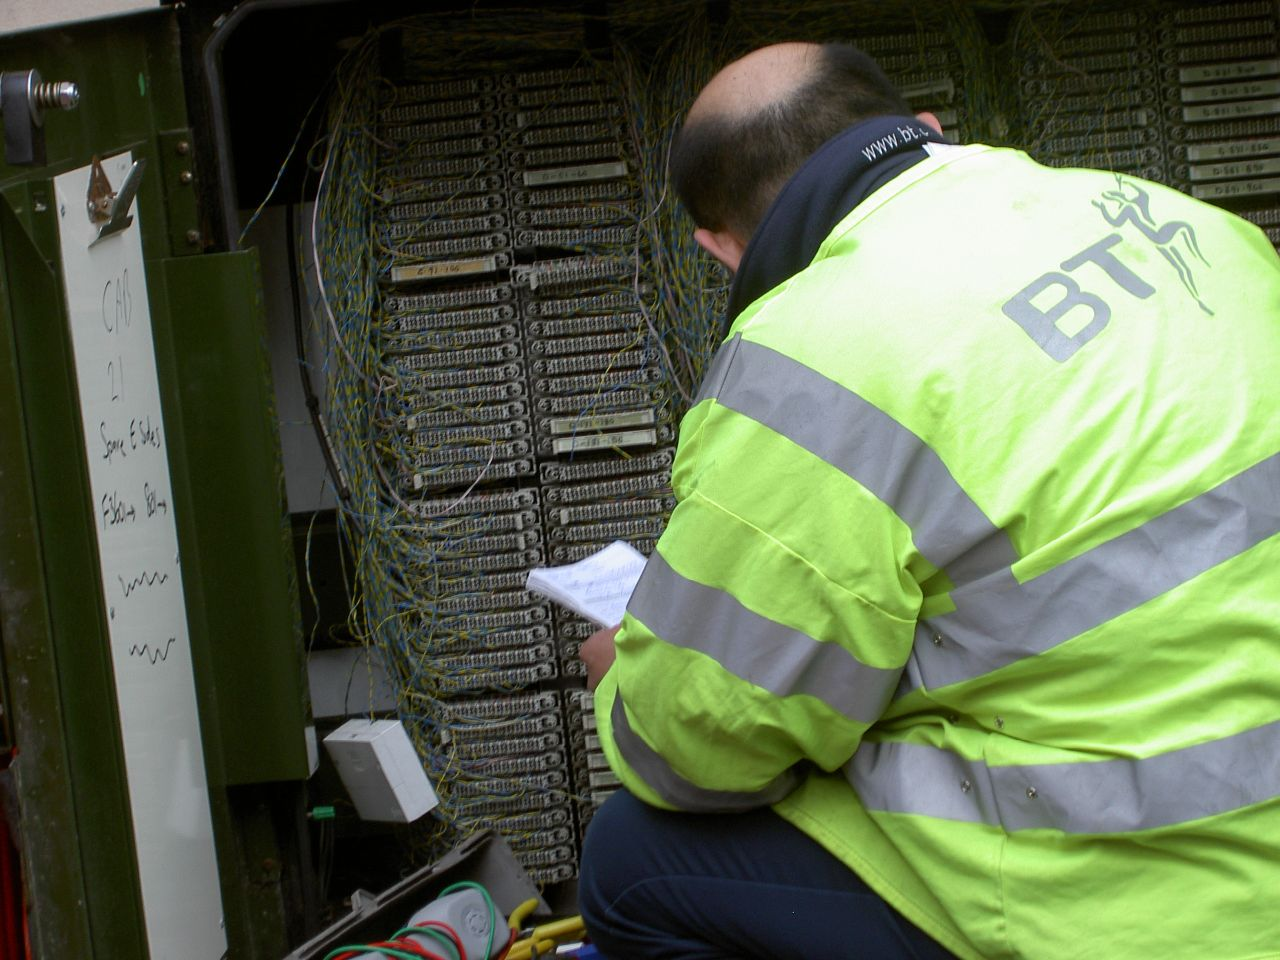 BT engineer communication guide training firm Glasgow.